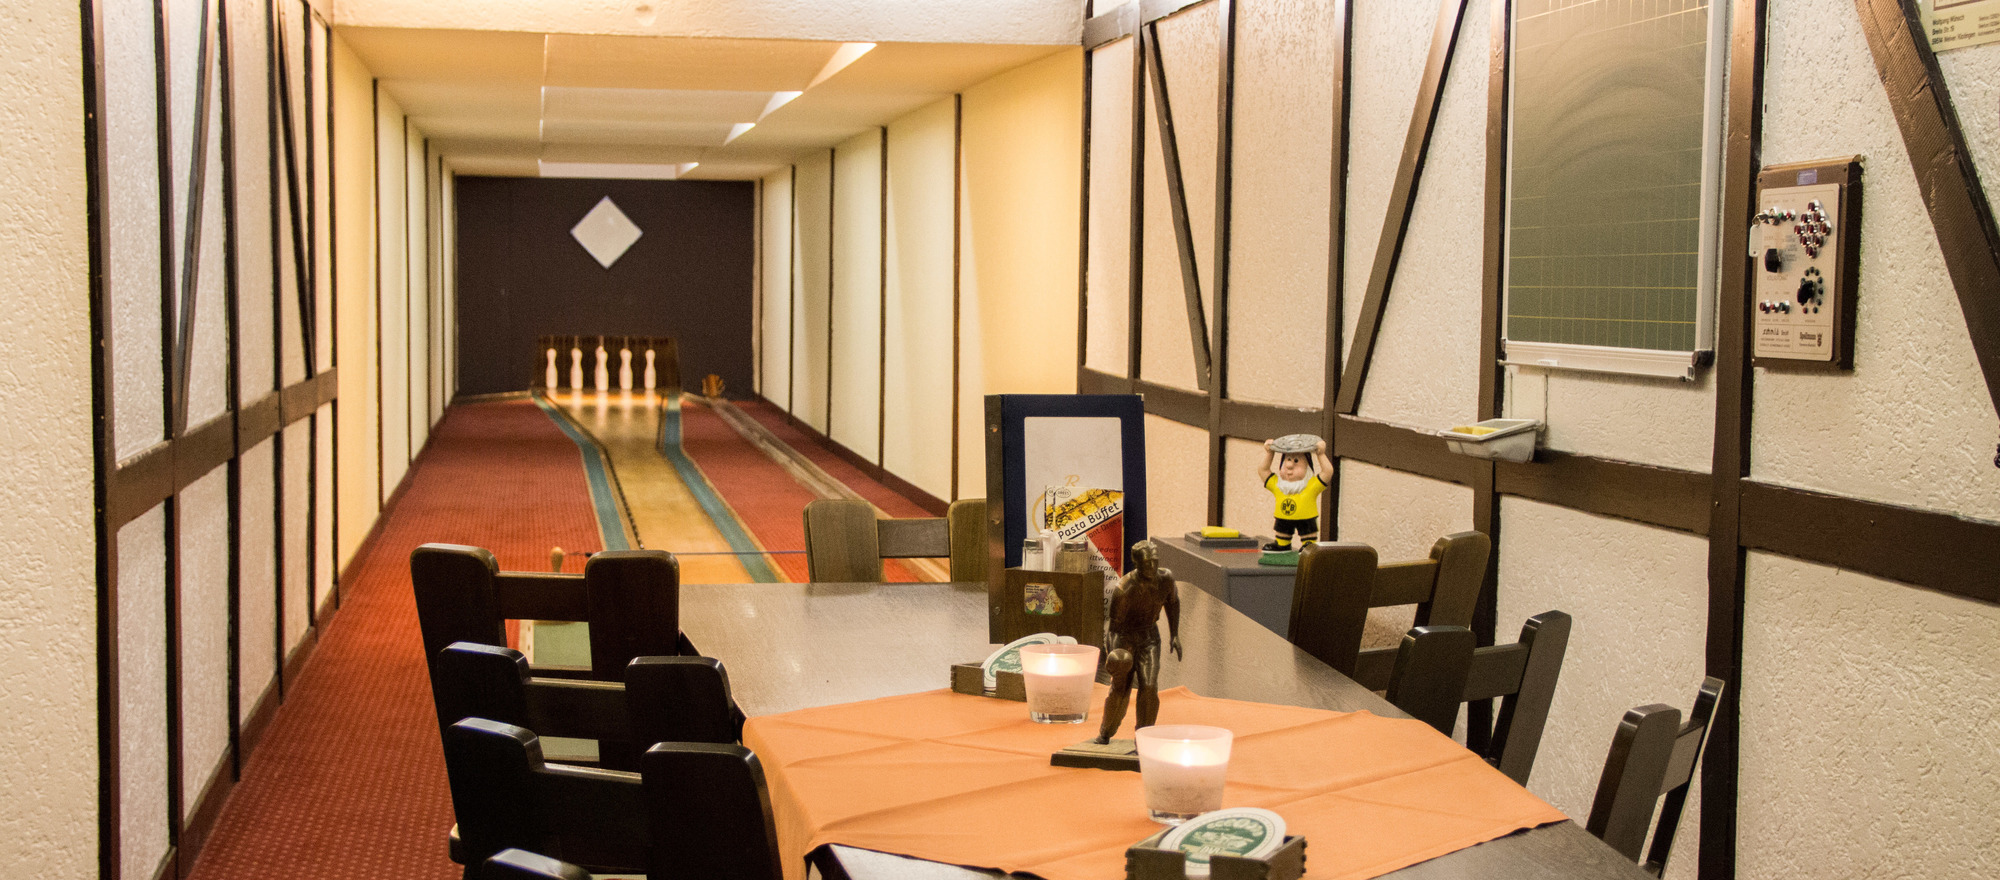 Perfect destination for clubs or friends; fun at the Alte Gasse bar with three skittles lanes in Ringhotel Drees in Dortmund